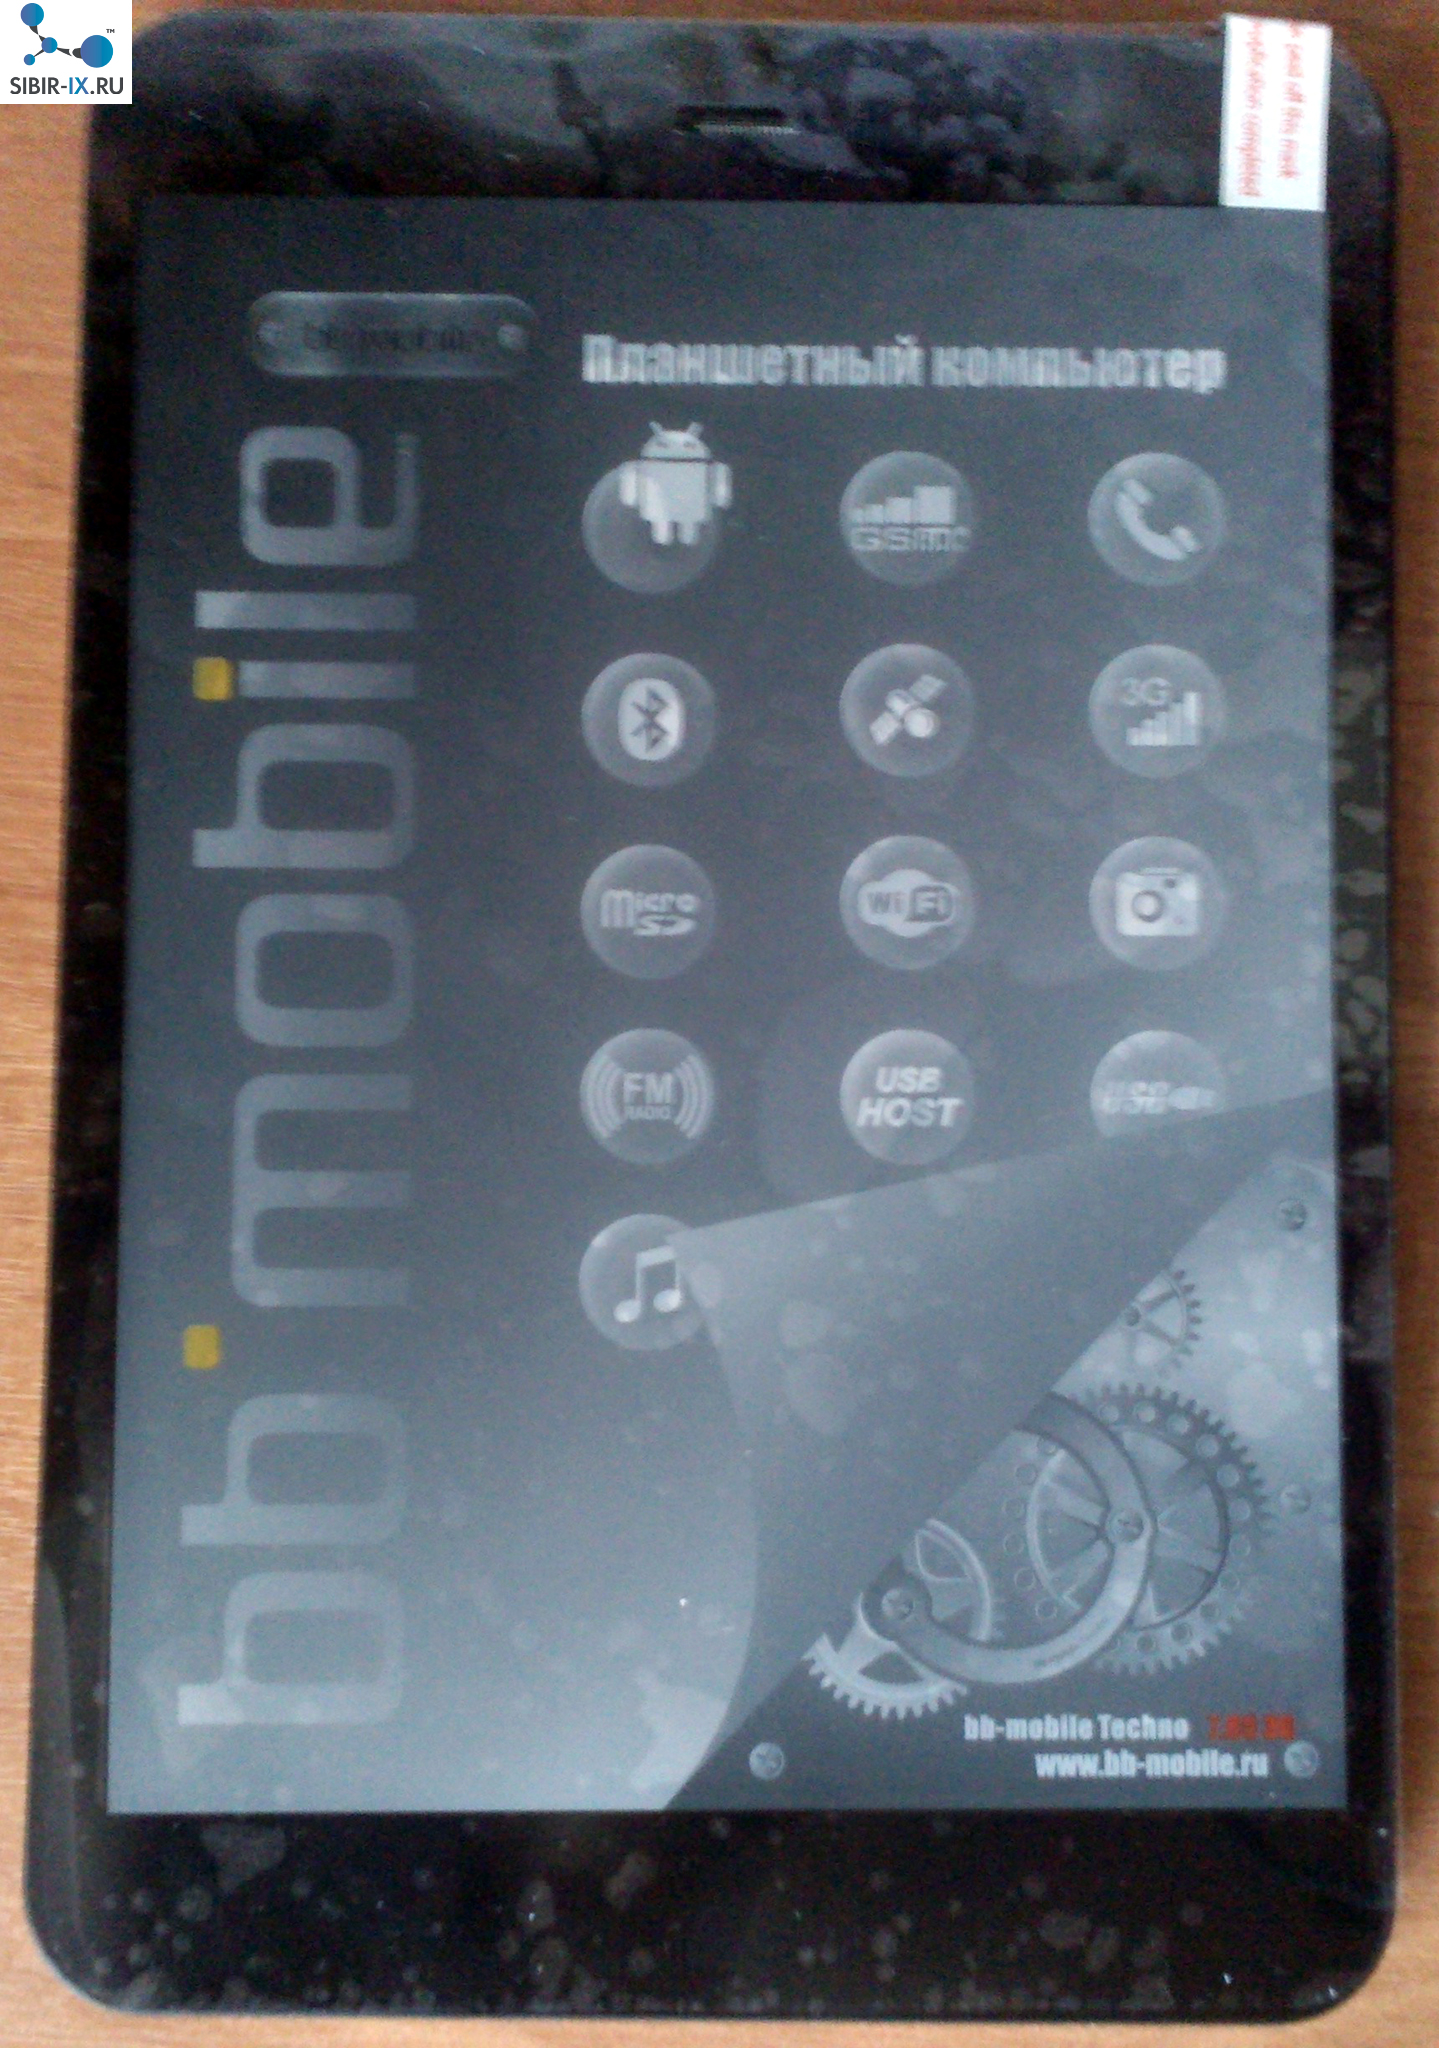 bb-mobile techno 7.85 3g